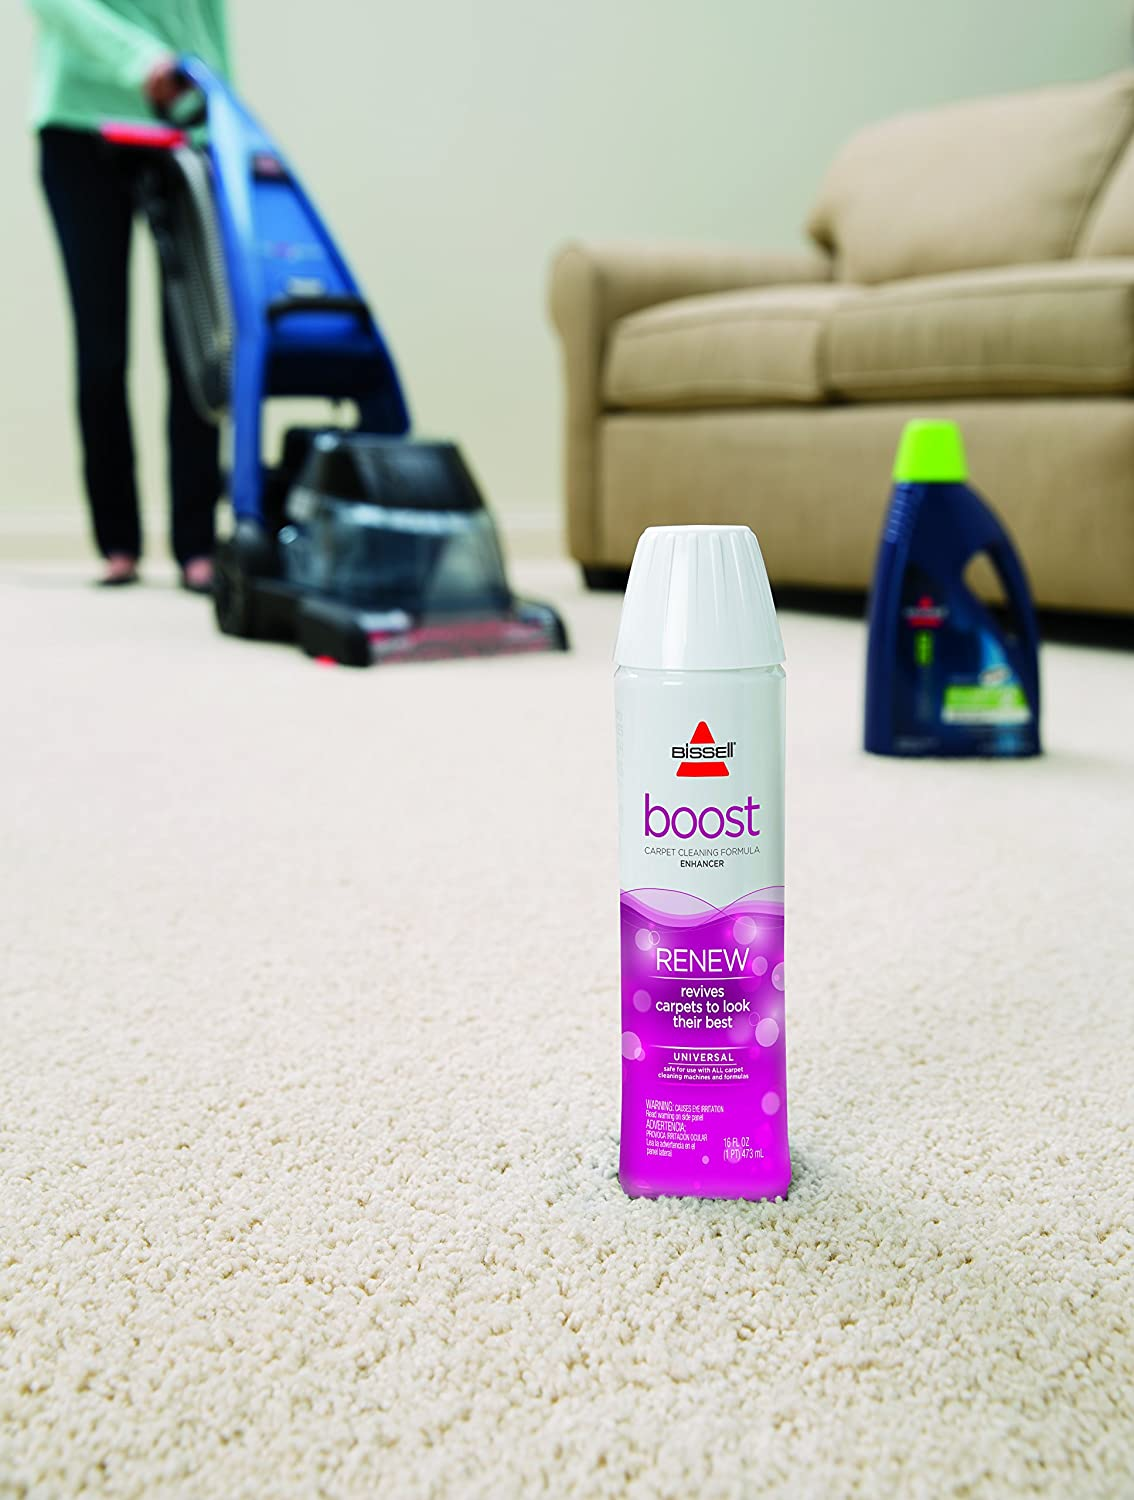 Amazon.com: BISSELL Renew Boost Carpet Cleaning Formula Enhancer: Home & Kitchen